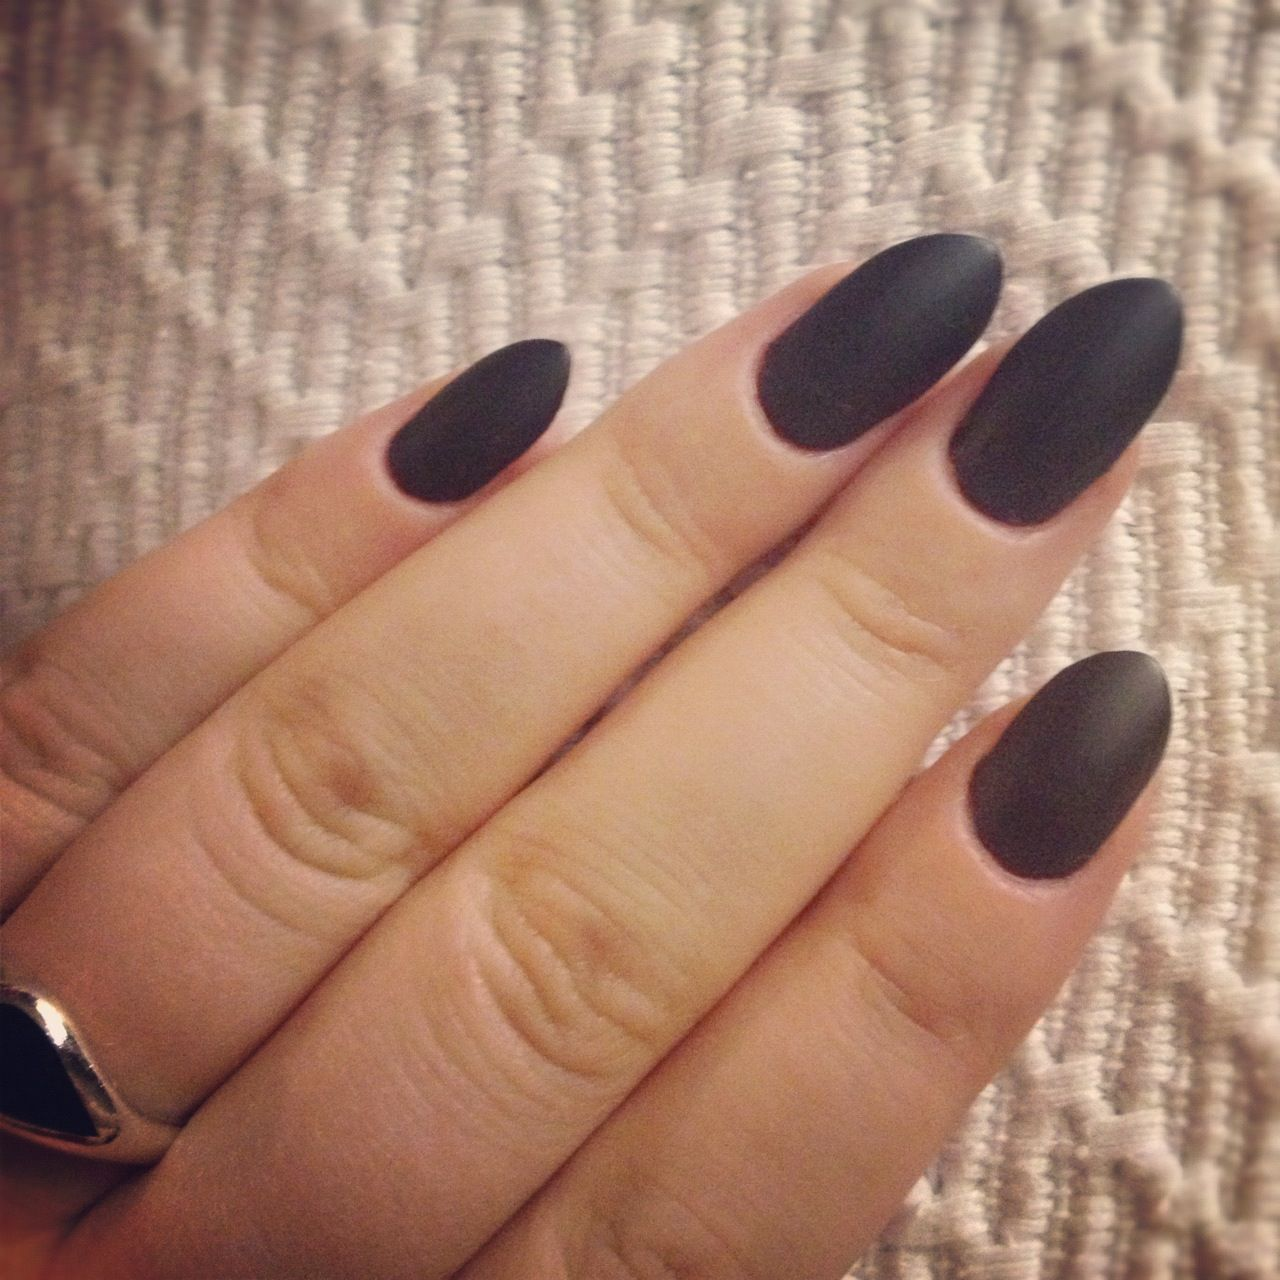 Rounded dark matte acrylics | Daily Life | Pinterest | Acrylics ...